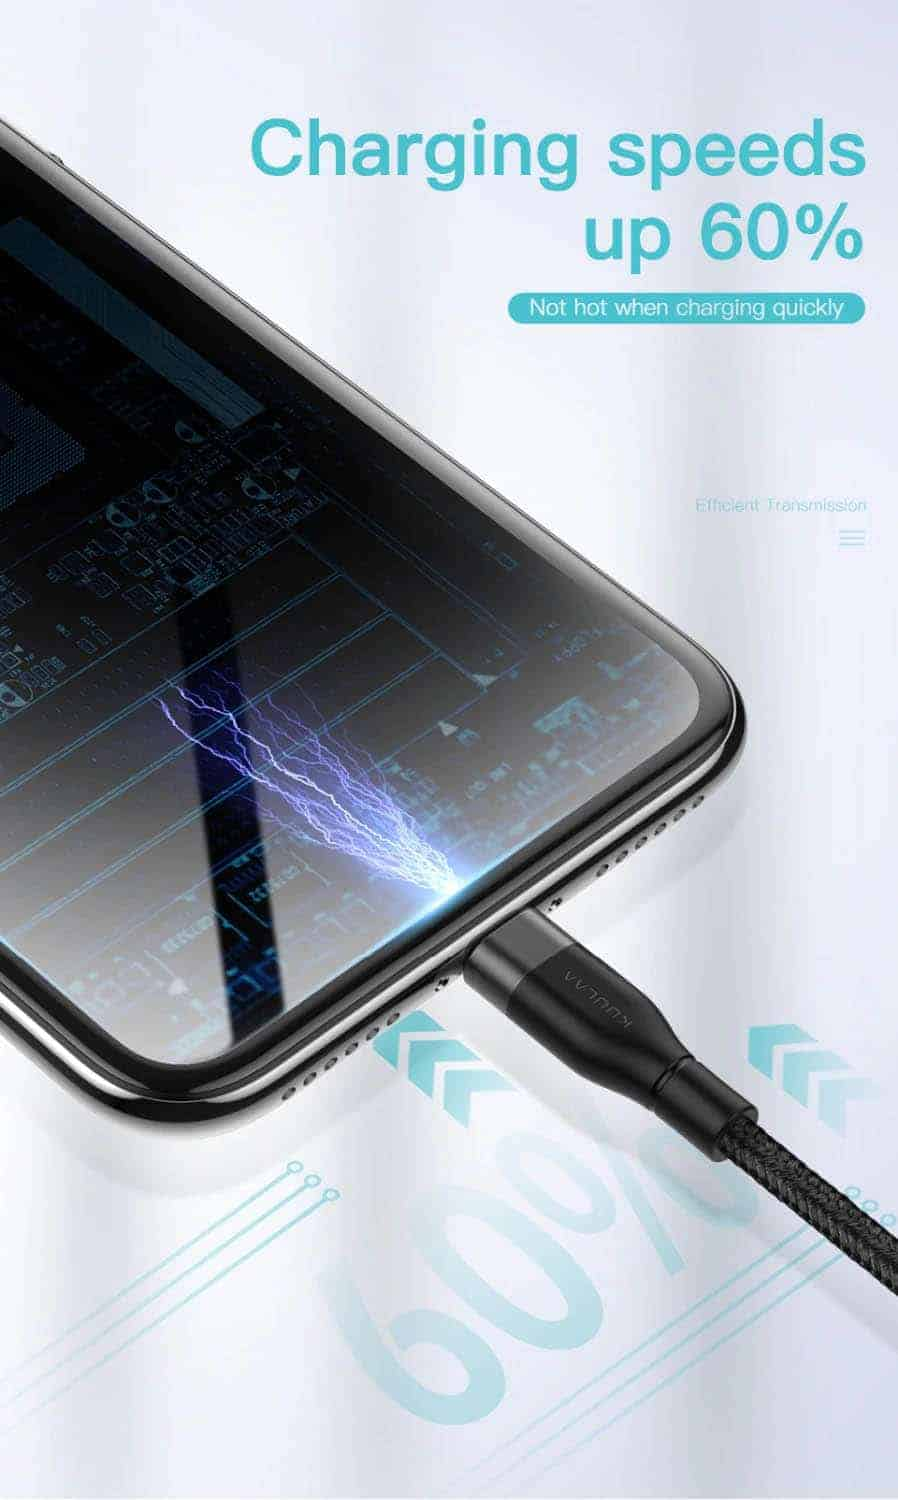 KUULAA USB Type C Cable 3A Charging Speeds Up 60%